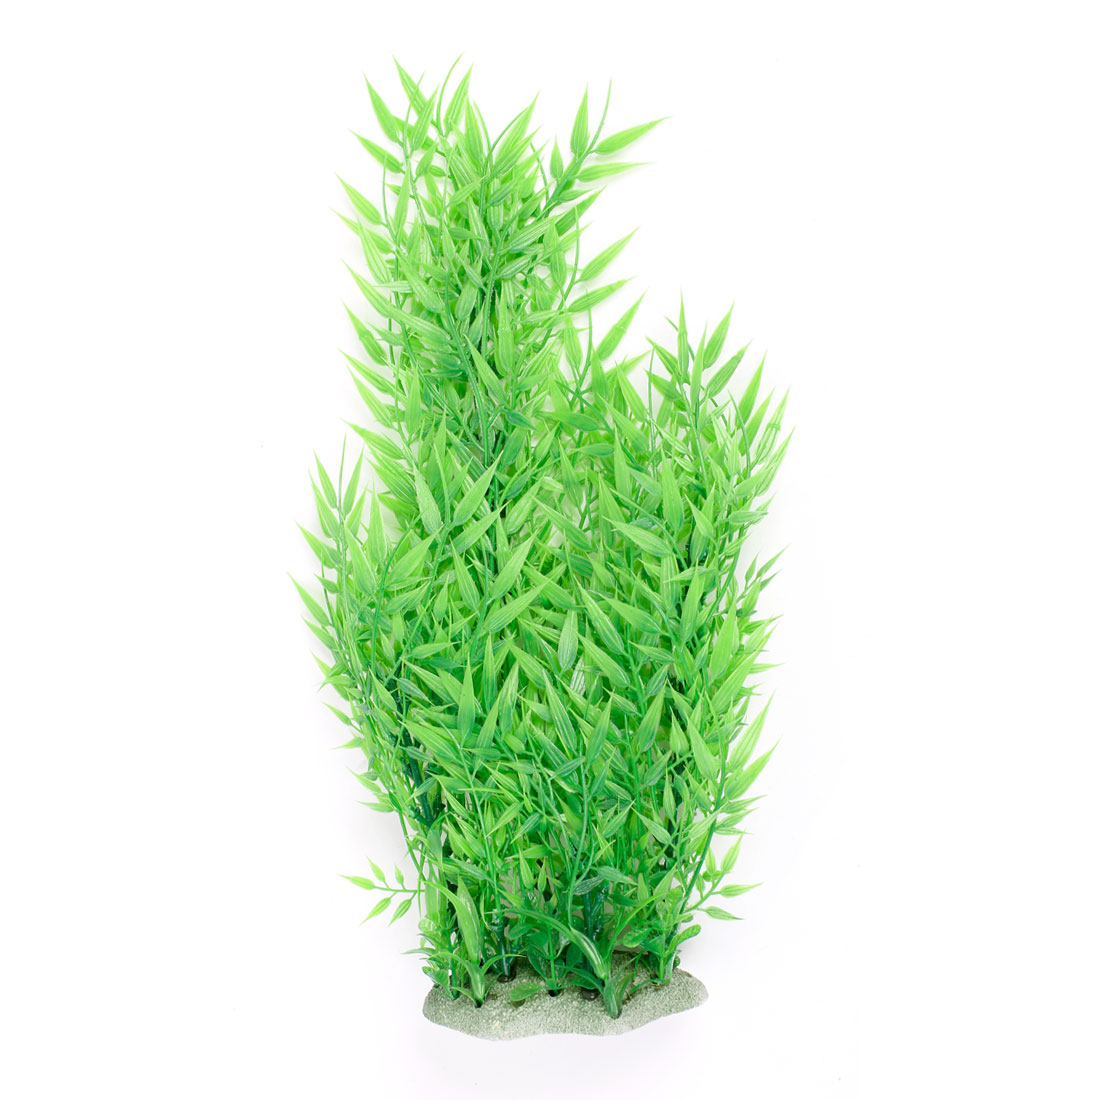 "Aquarium Aquascaping Green Plastic Water Plant Grass Decor 17.7"" Height"